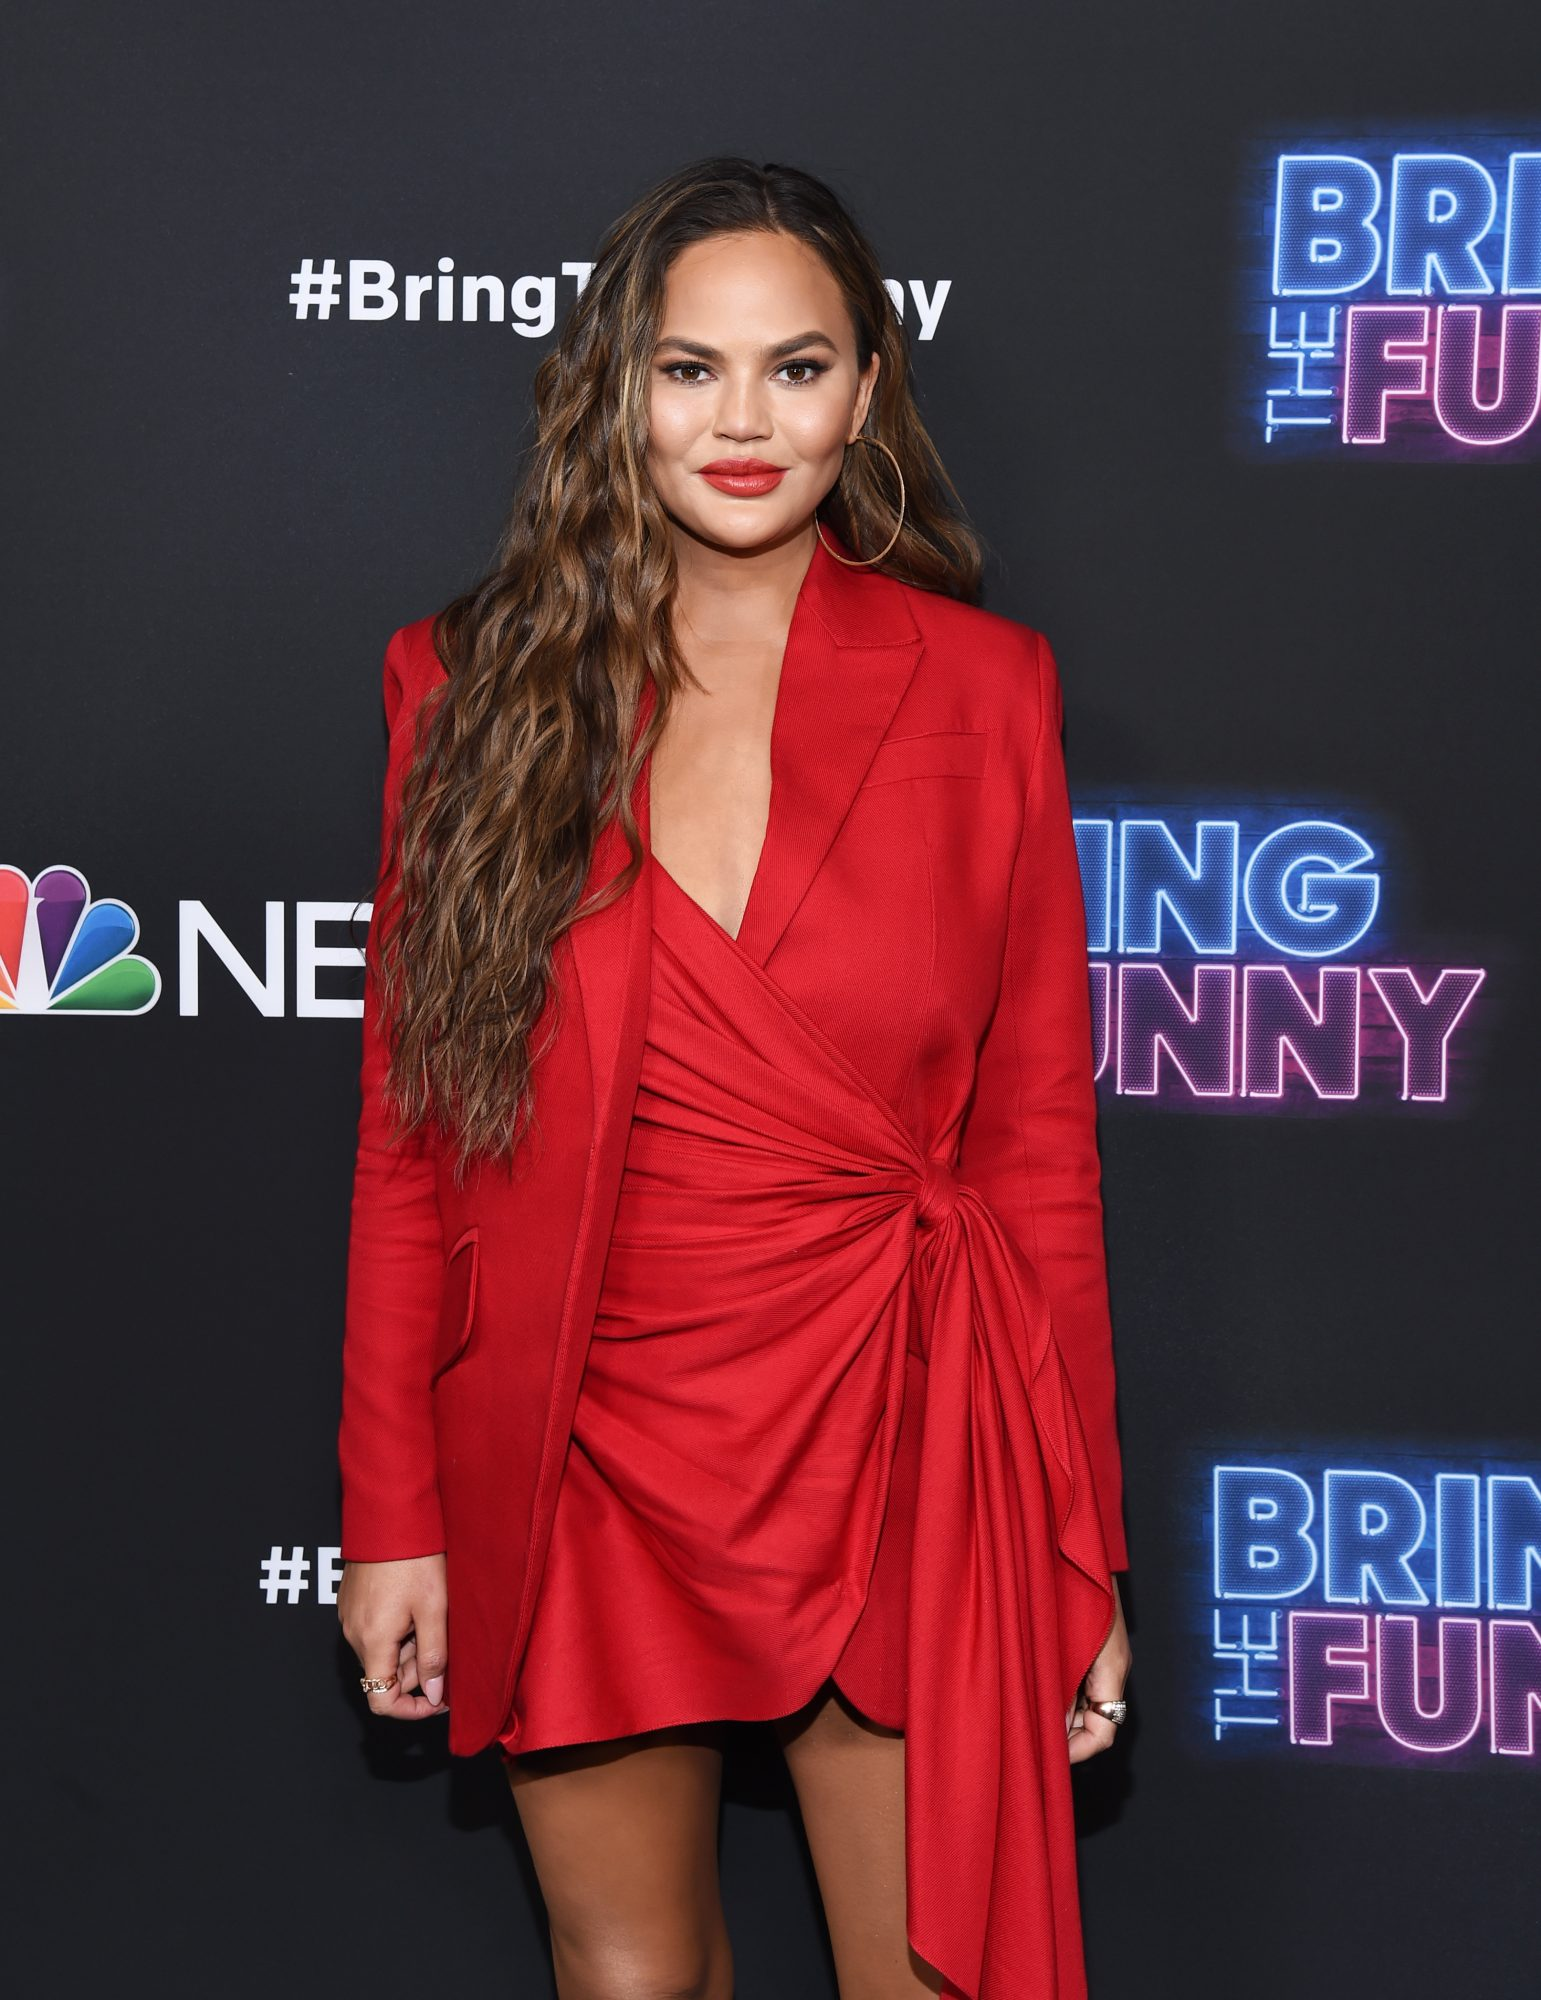 Chrissy Teigen Took Internet Trolls to Task When They Shamed Her for Going Braless